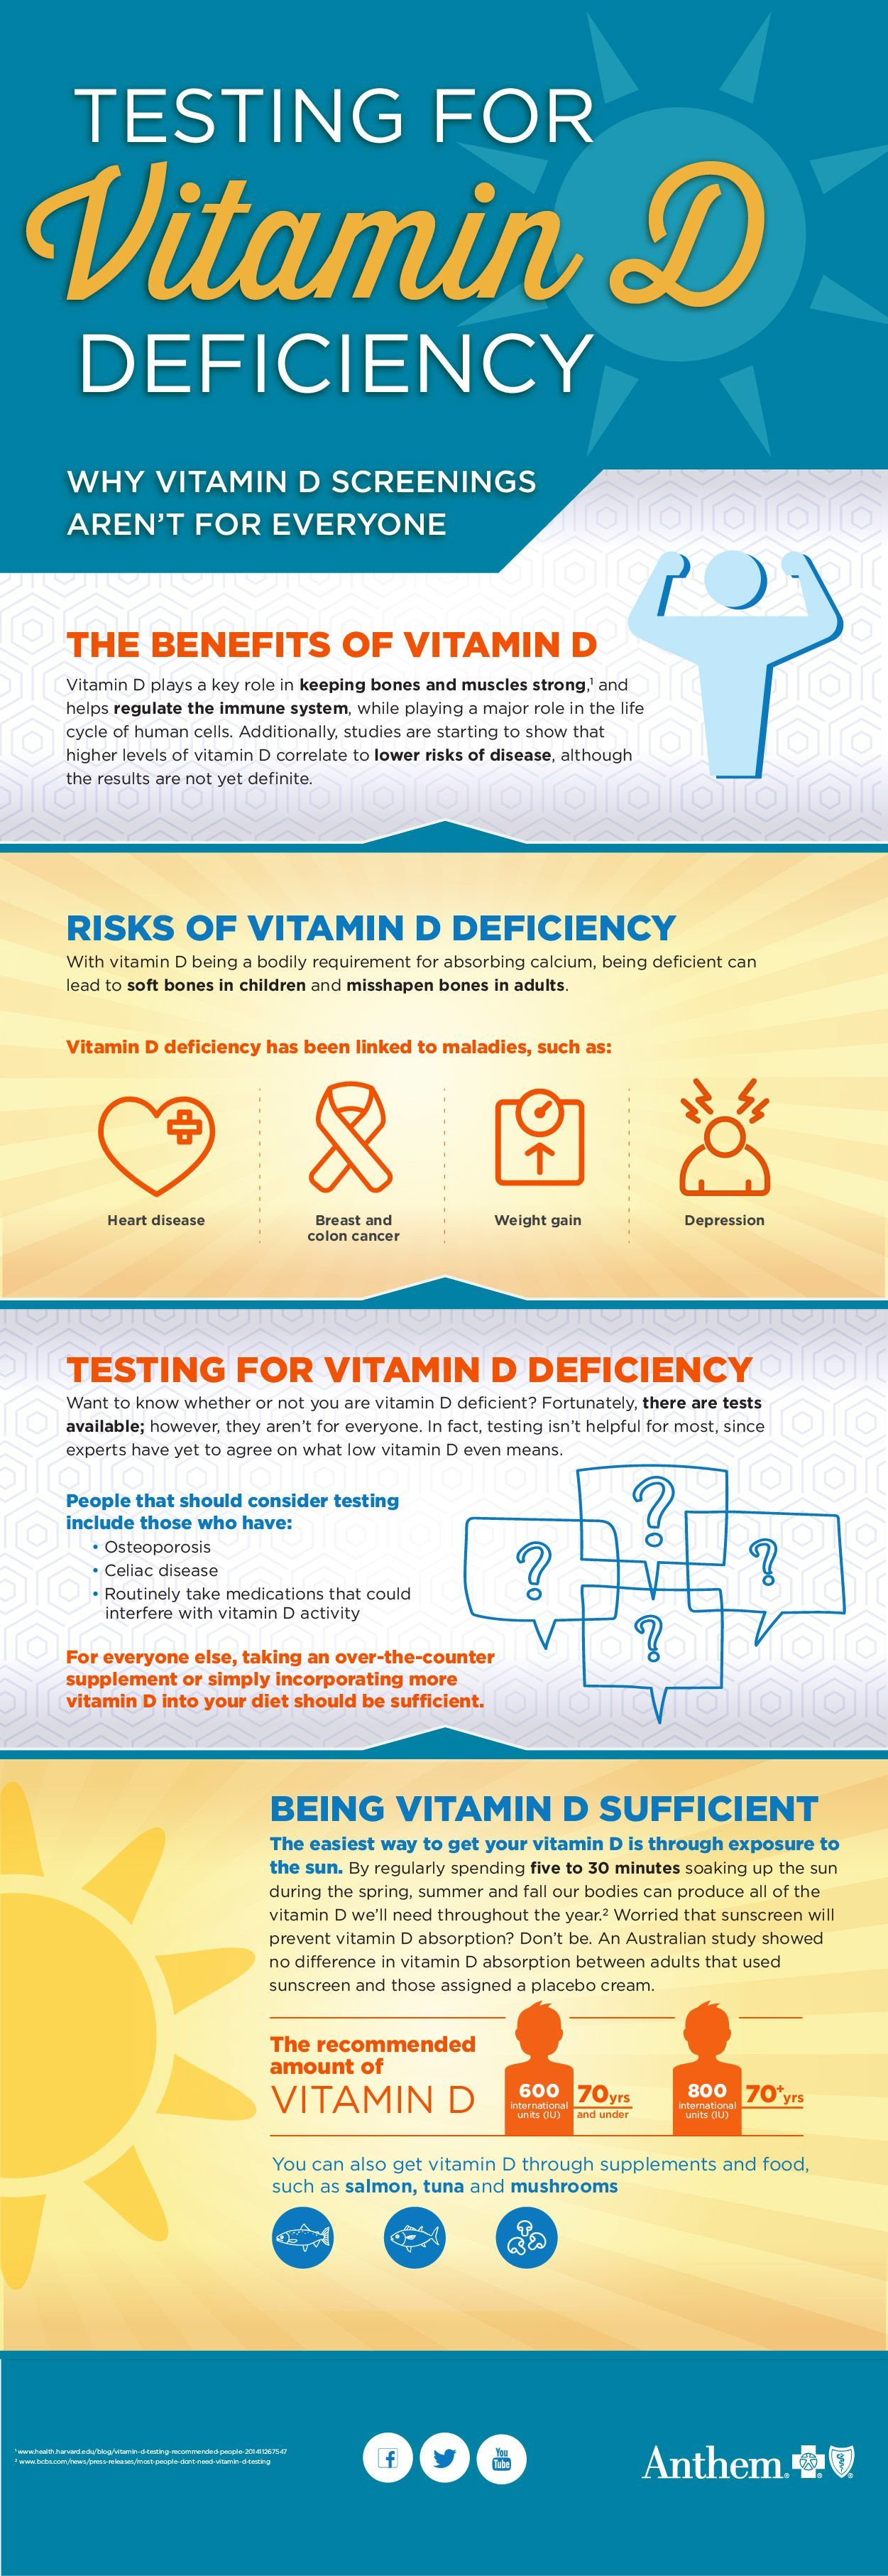 Testing For Vitamin D Deficiency